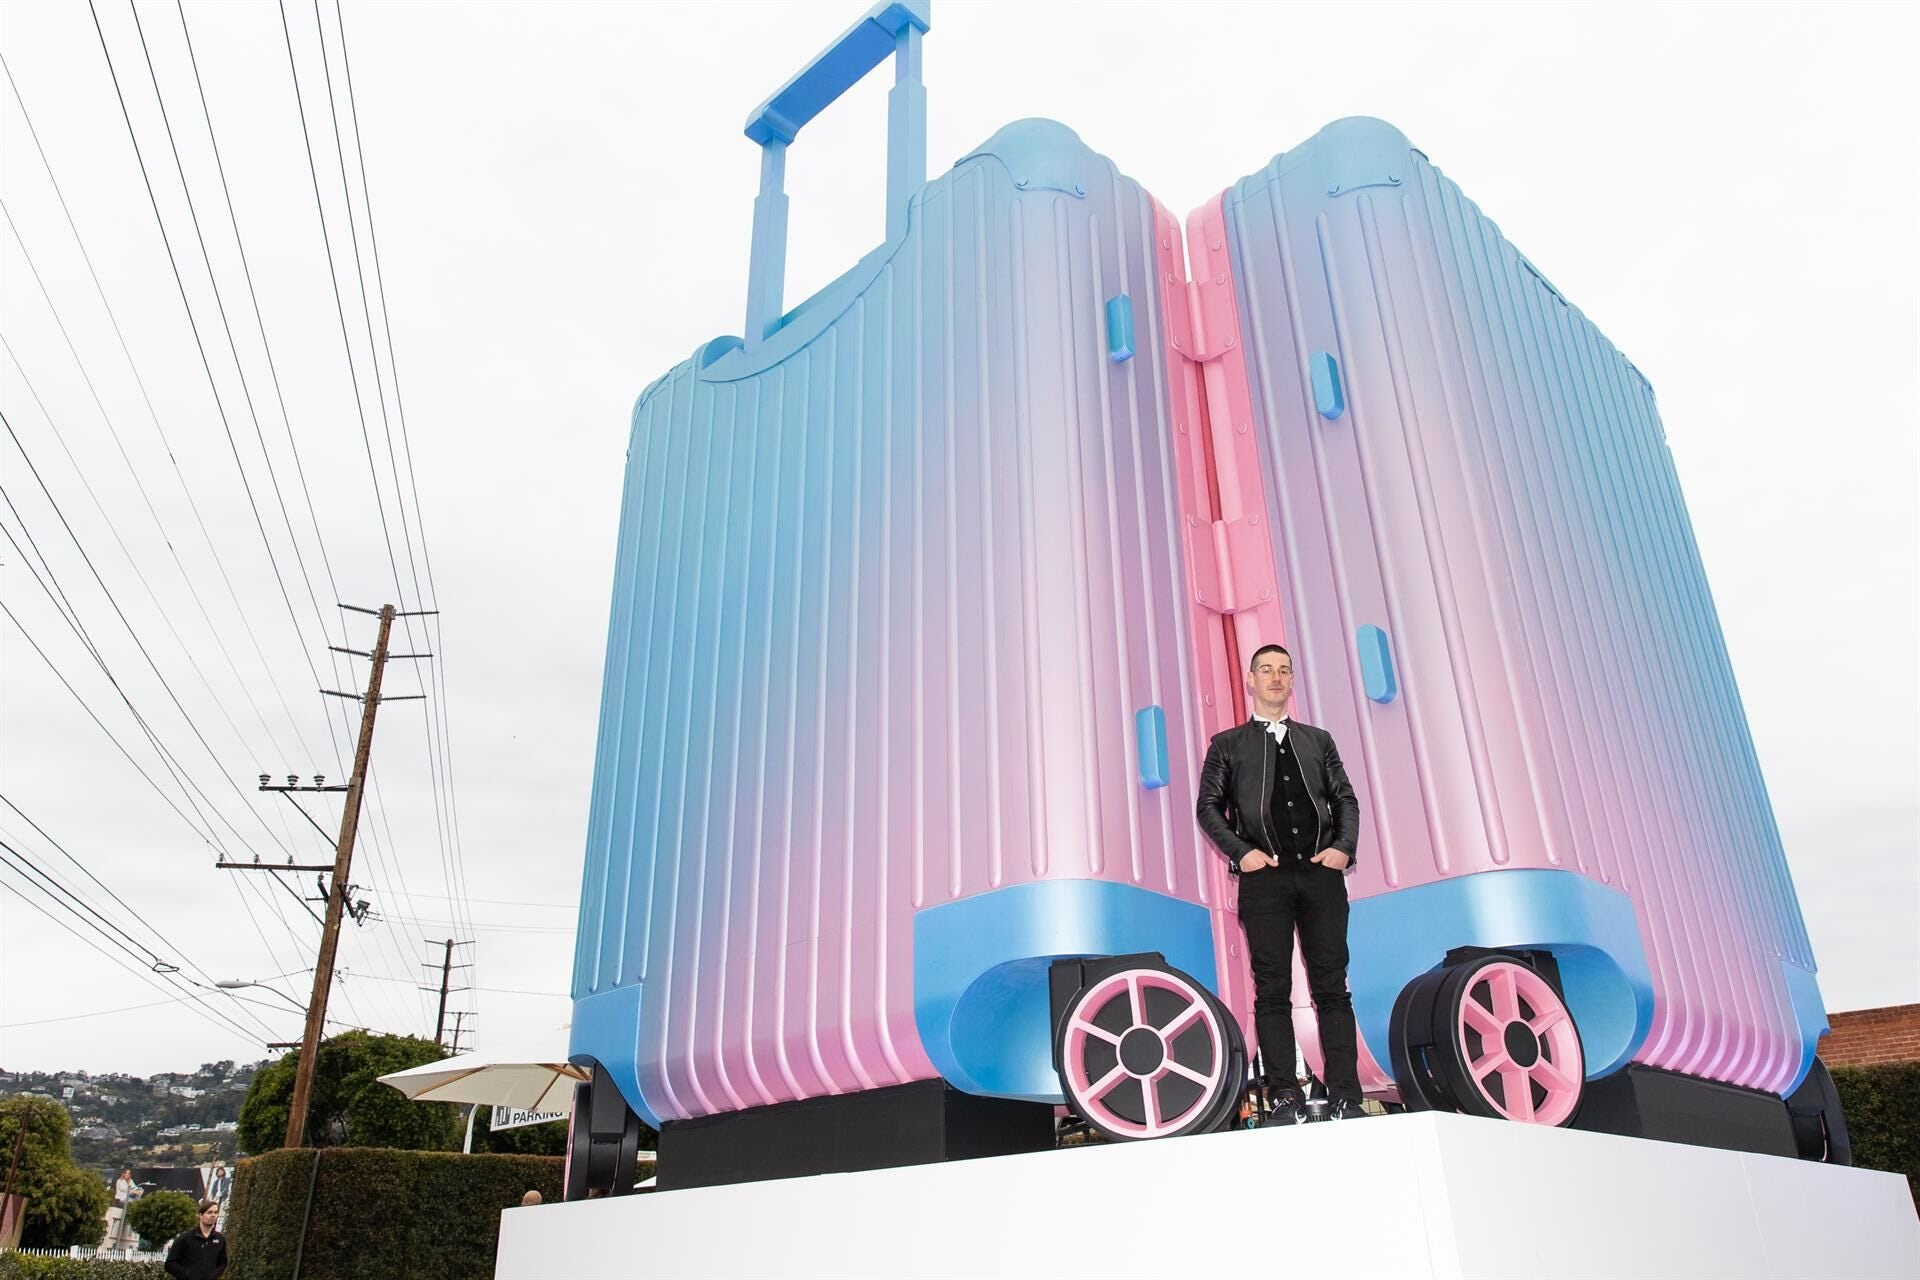 The giant Rimowa suitcase by artist Alex Israel   Source: Courtesy